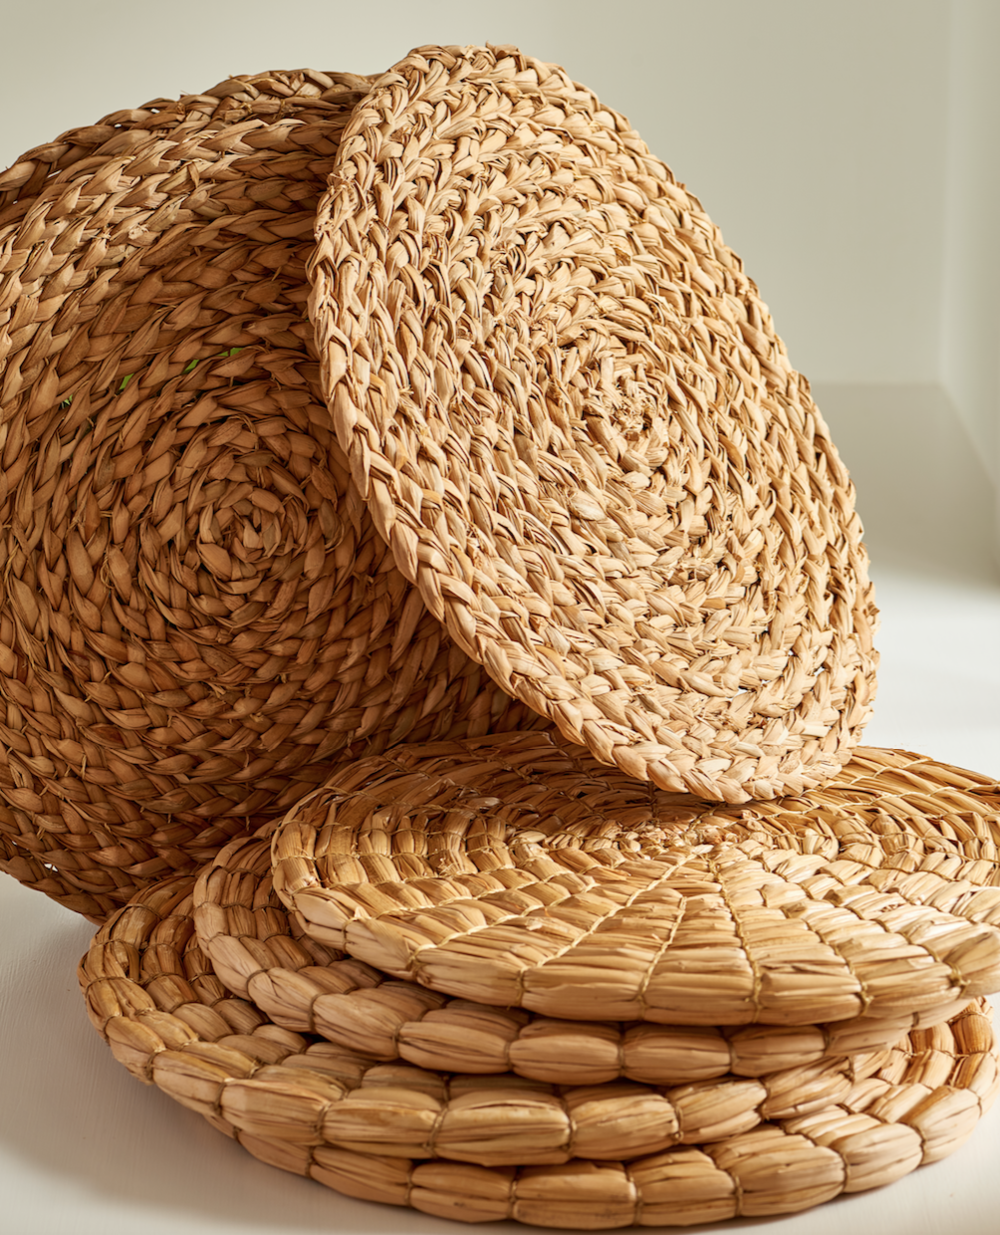 Round natural seagrass mats, braided or natural, $20 each